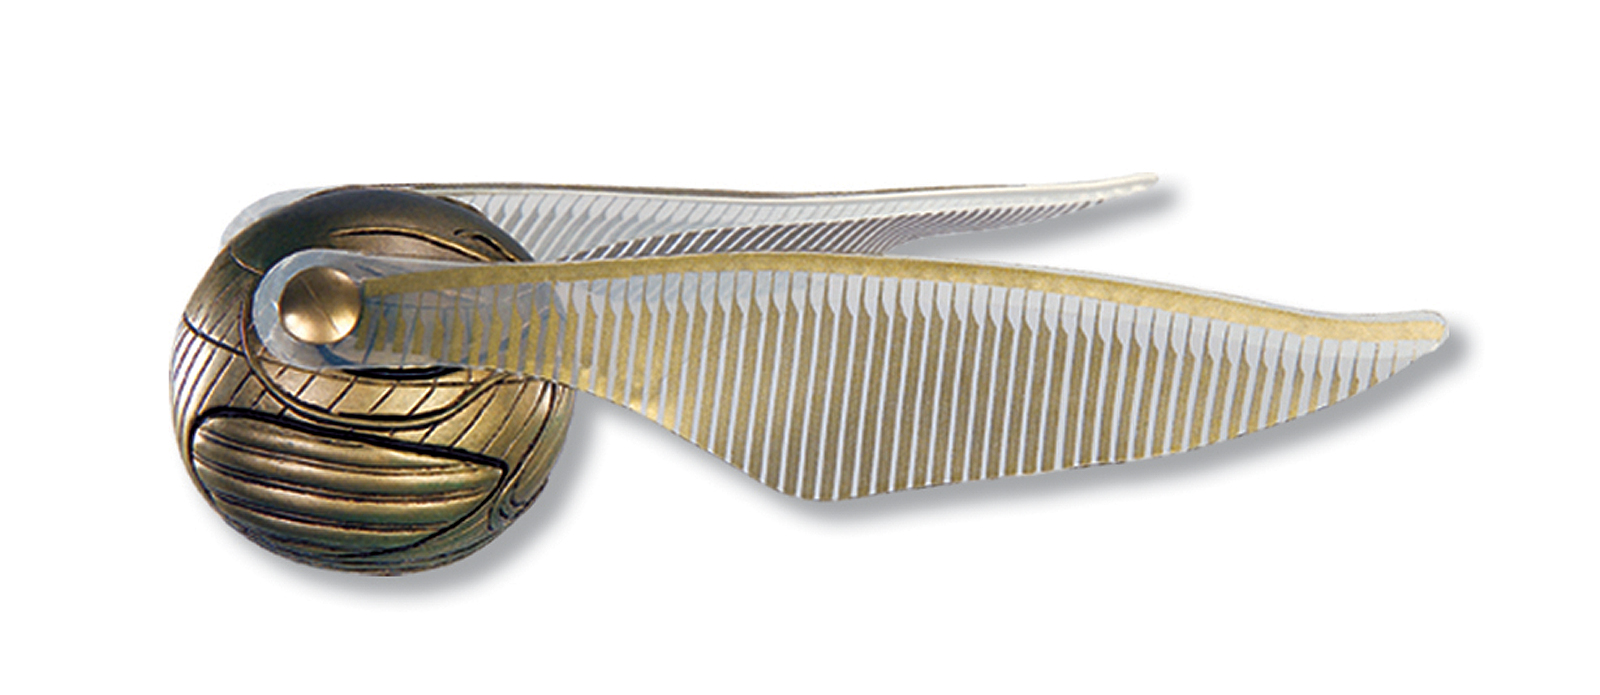 HARRY POTTER GOLDEN SNITCH QUIDDITCH ACCESSORY